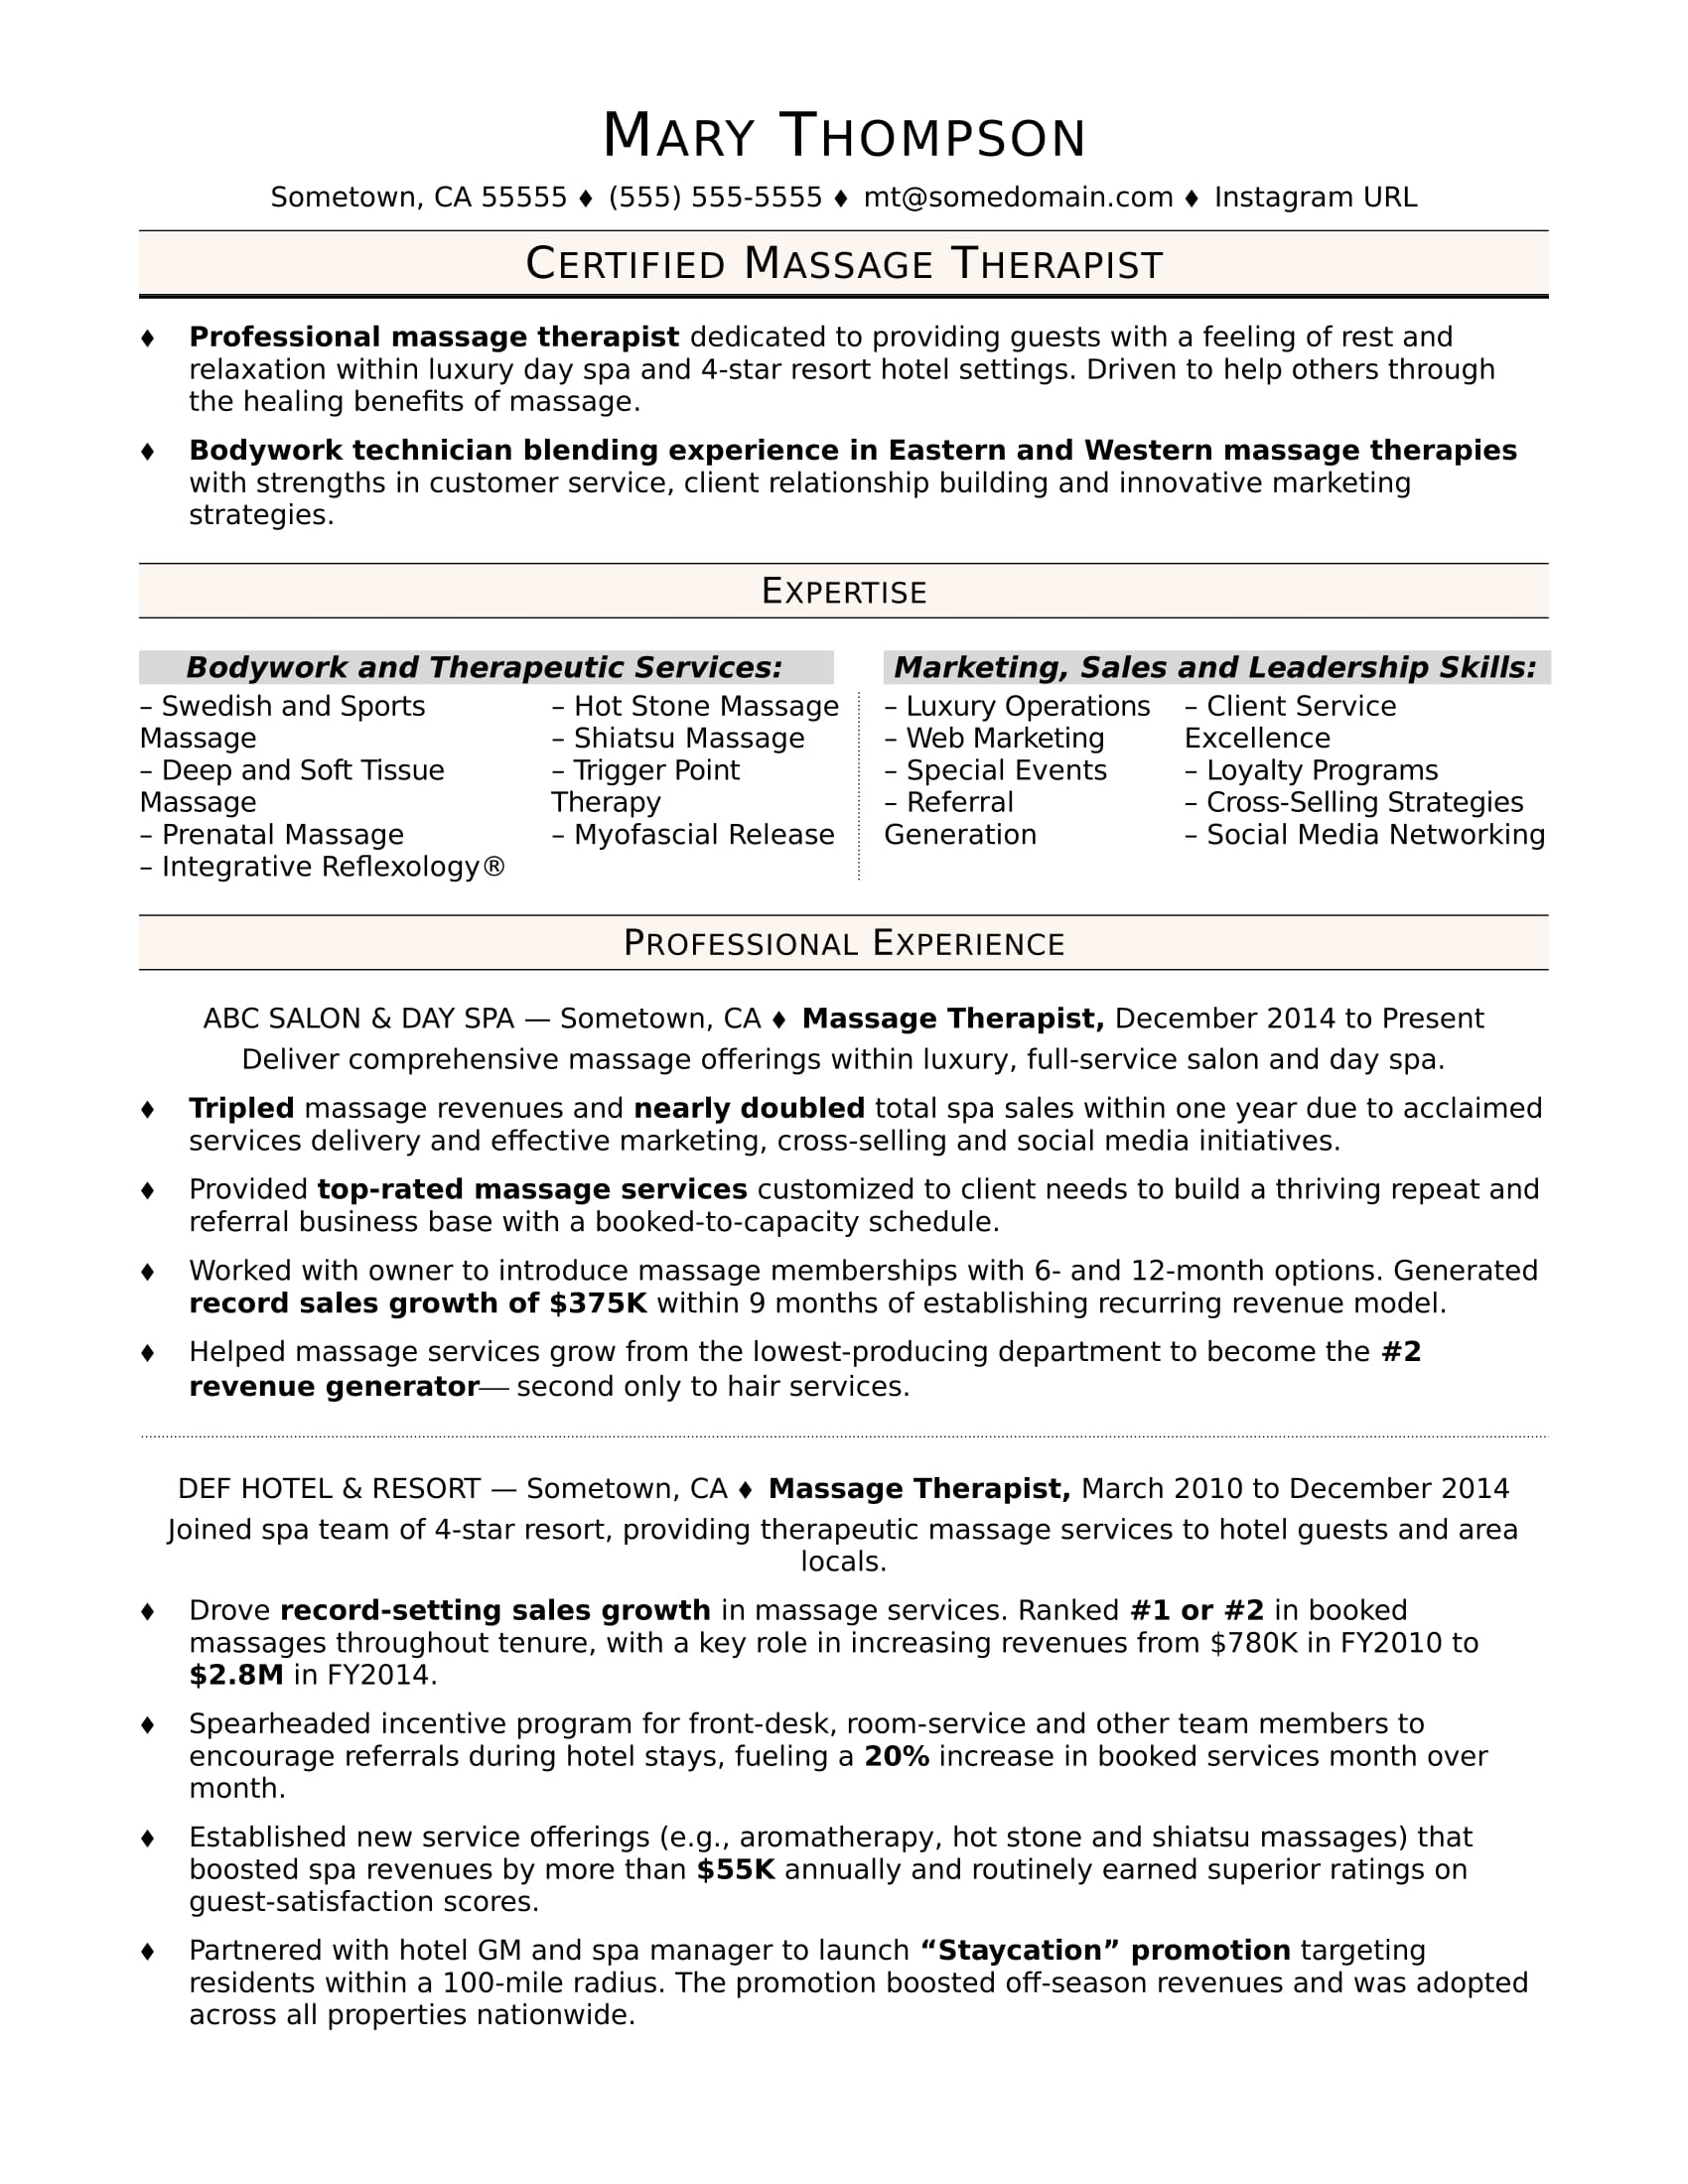 massage therapist resume sample monster examples format for new graduates phone number on Resume Massage Therapist Resume Examples